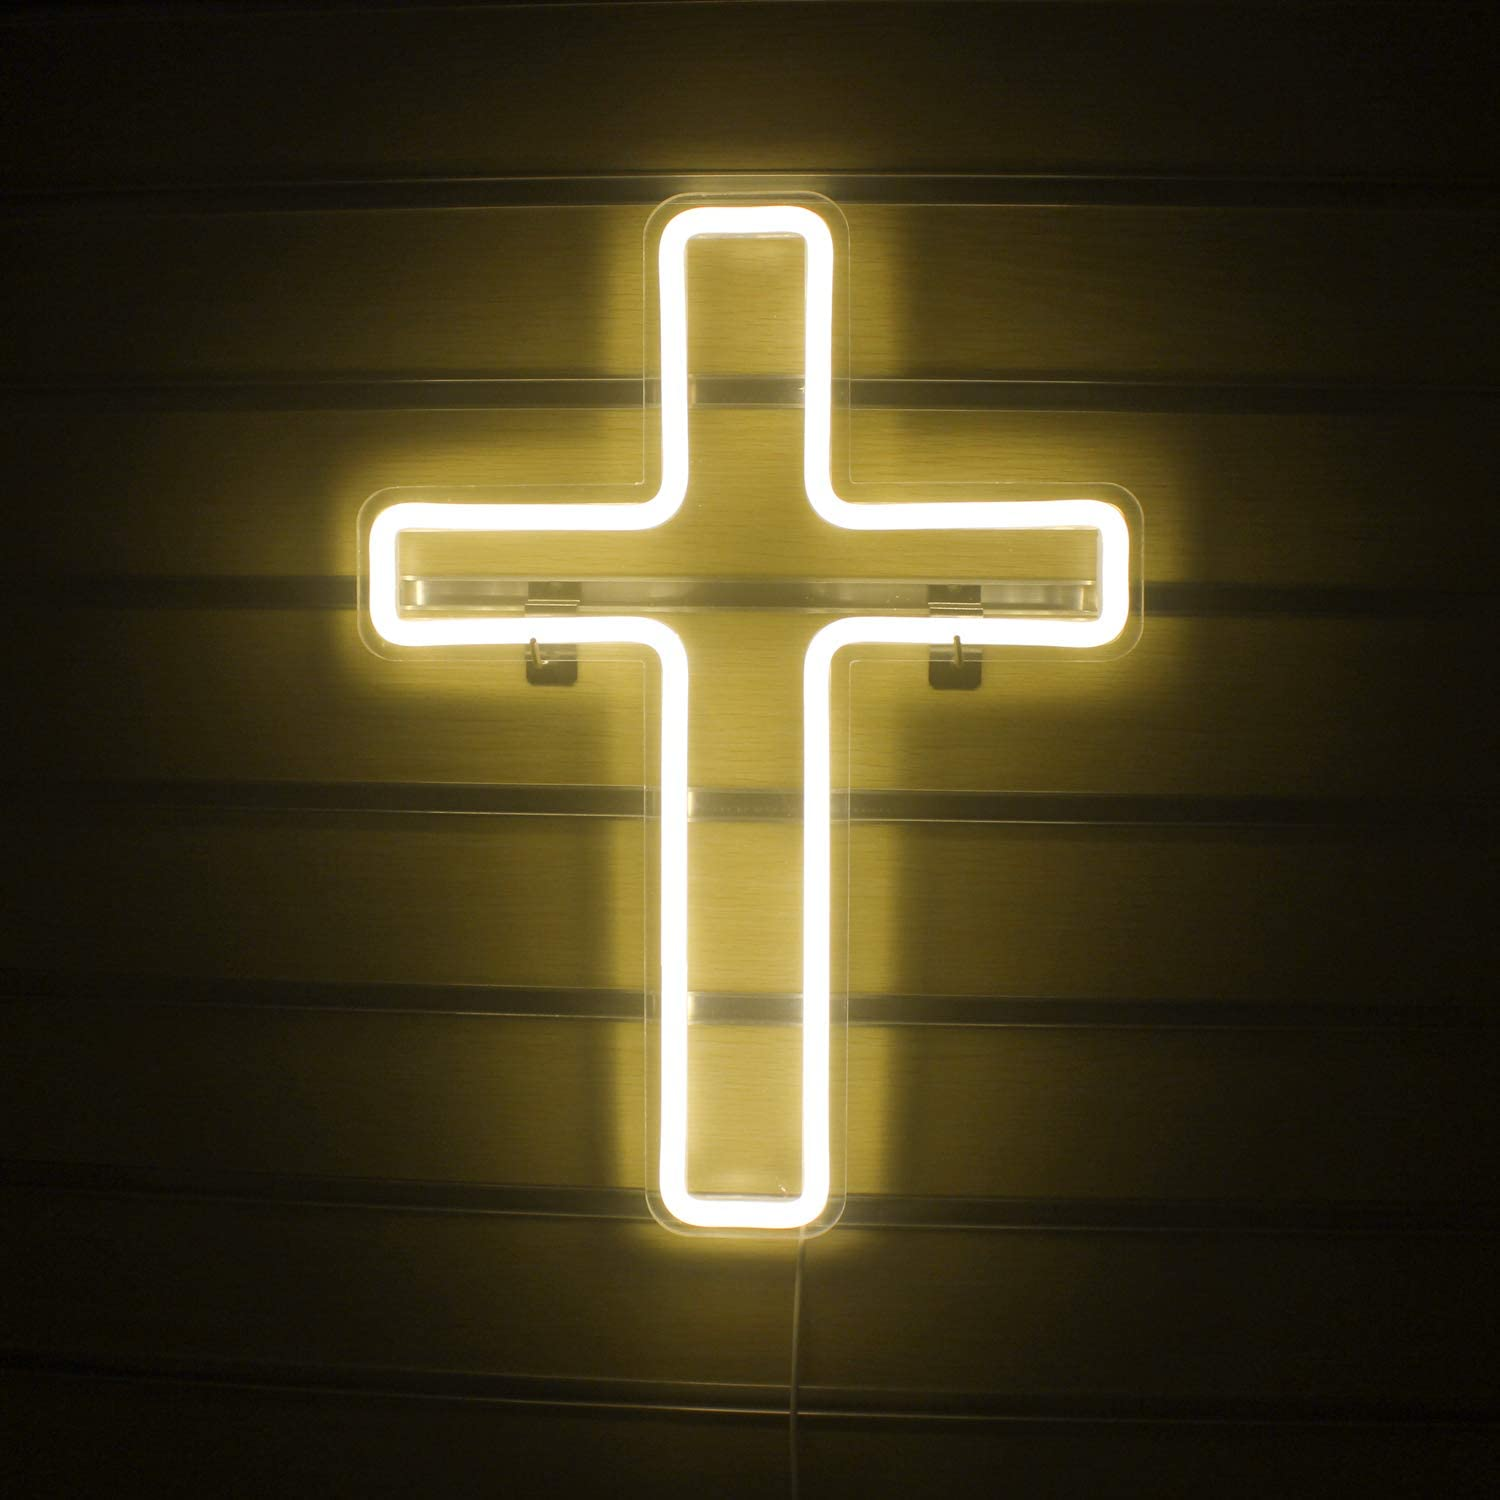 Jesus Cross Neon Signs Led Wall Sign Art Max 68% Max 80% OFF OFF H Lamp Lights